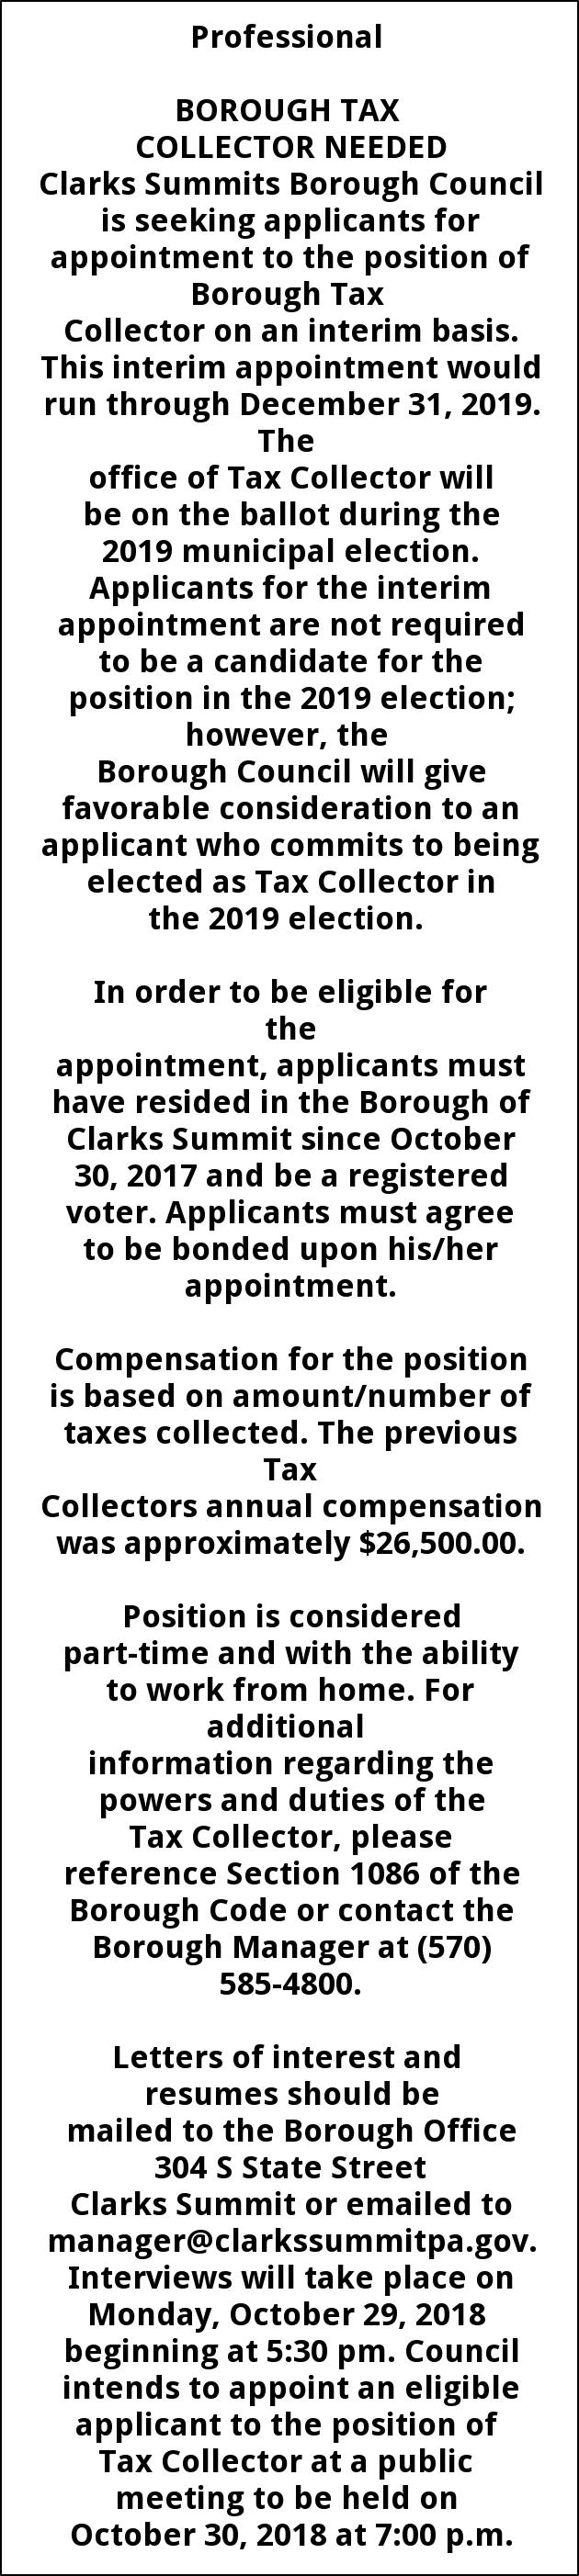 TAX COLLECTOR NEEDED